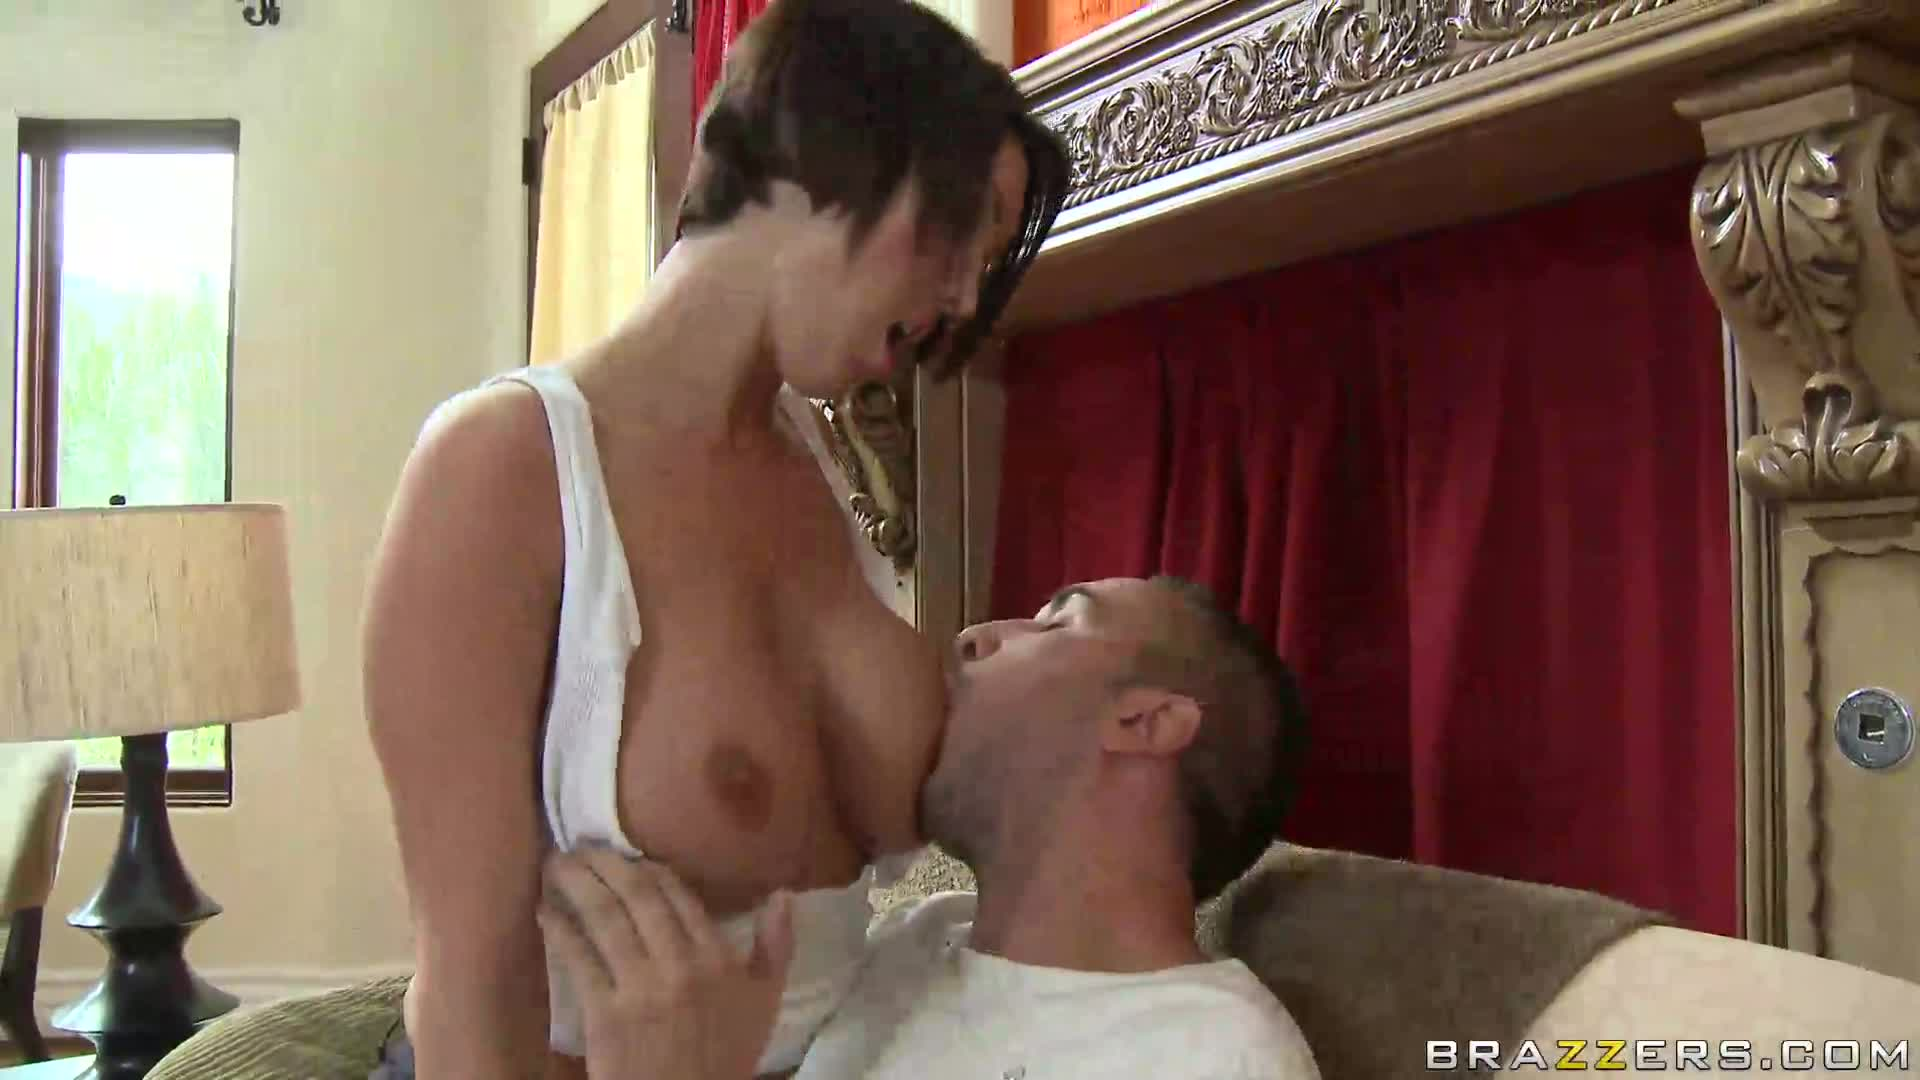 On Women huge cock bouncing